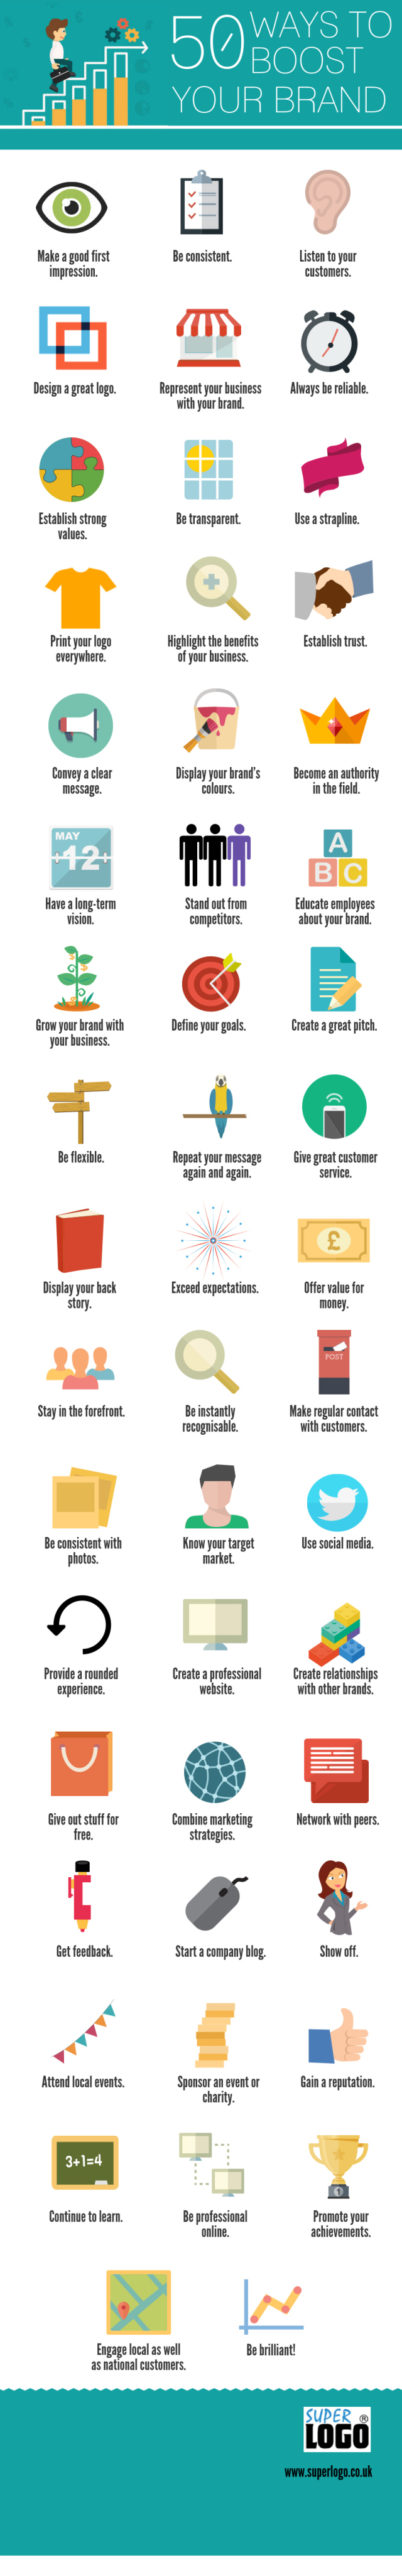 50-quick-and-simple-tips-to-boost-your-brand1